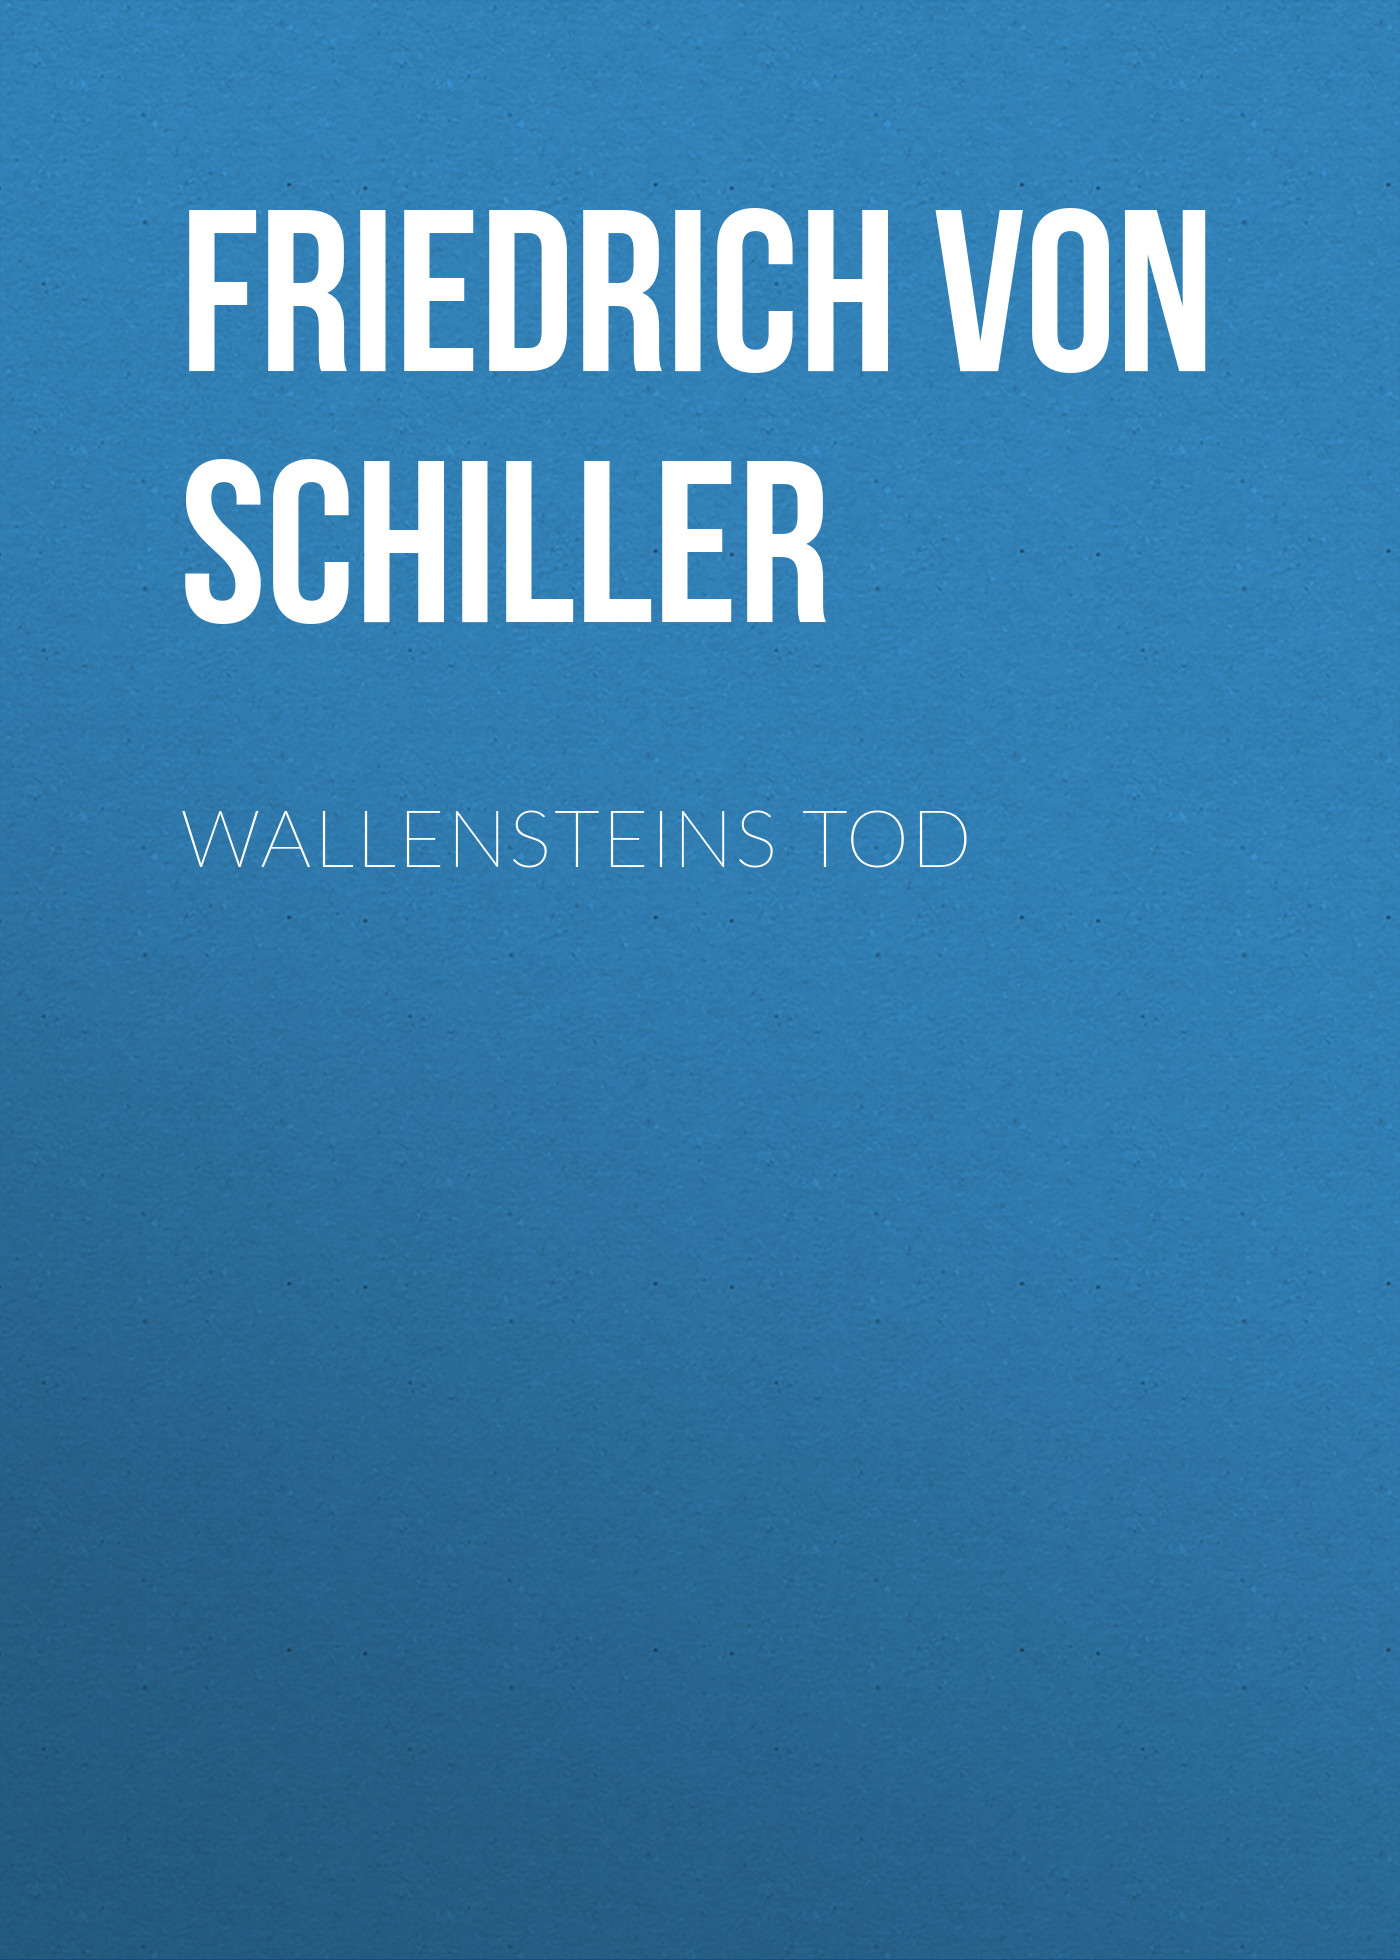 Friedrich von Schiller Wallensteins Tod alcatel one touch 2012d white